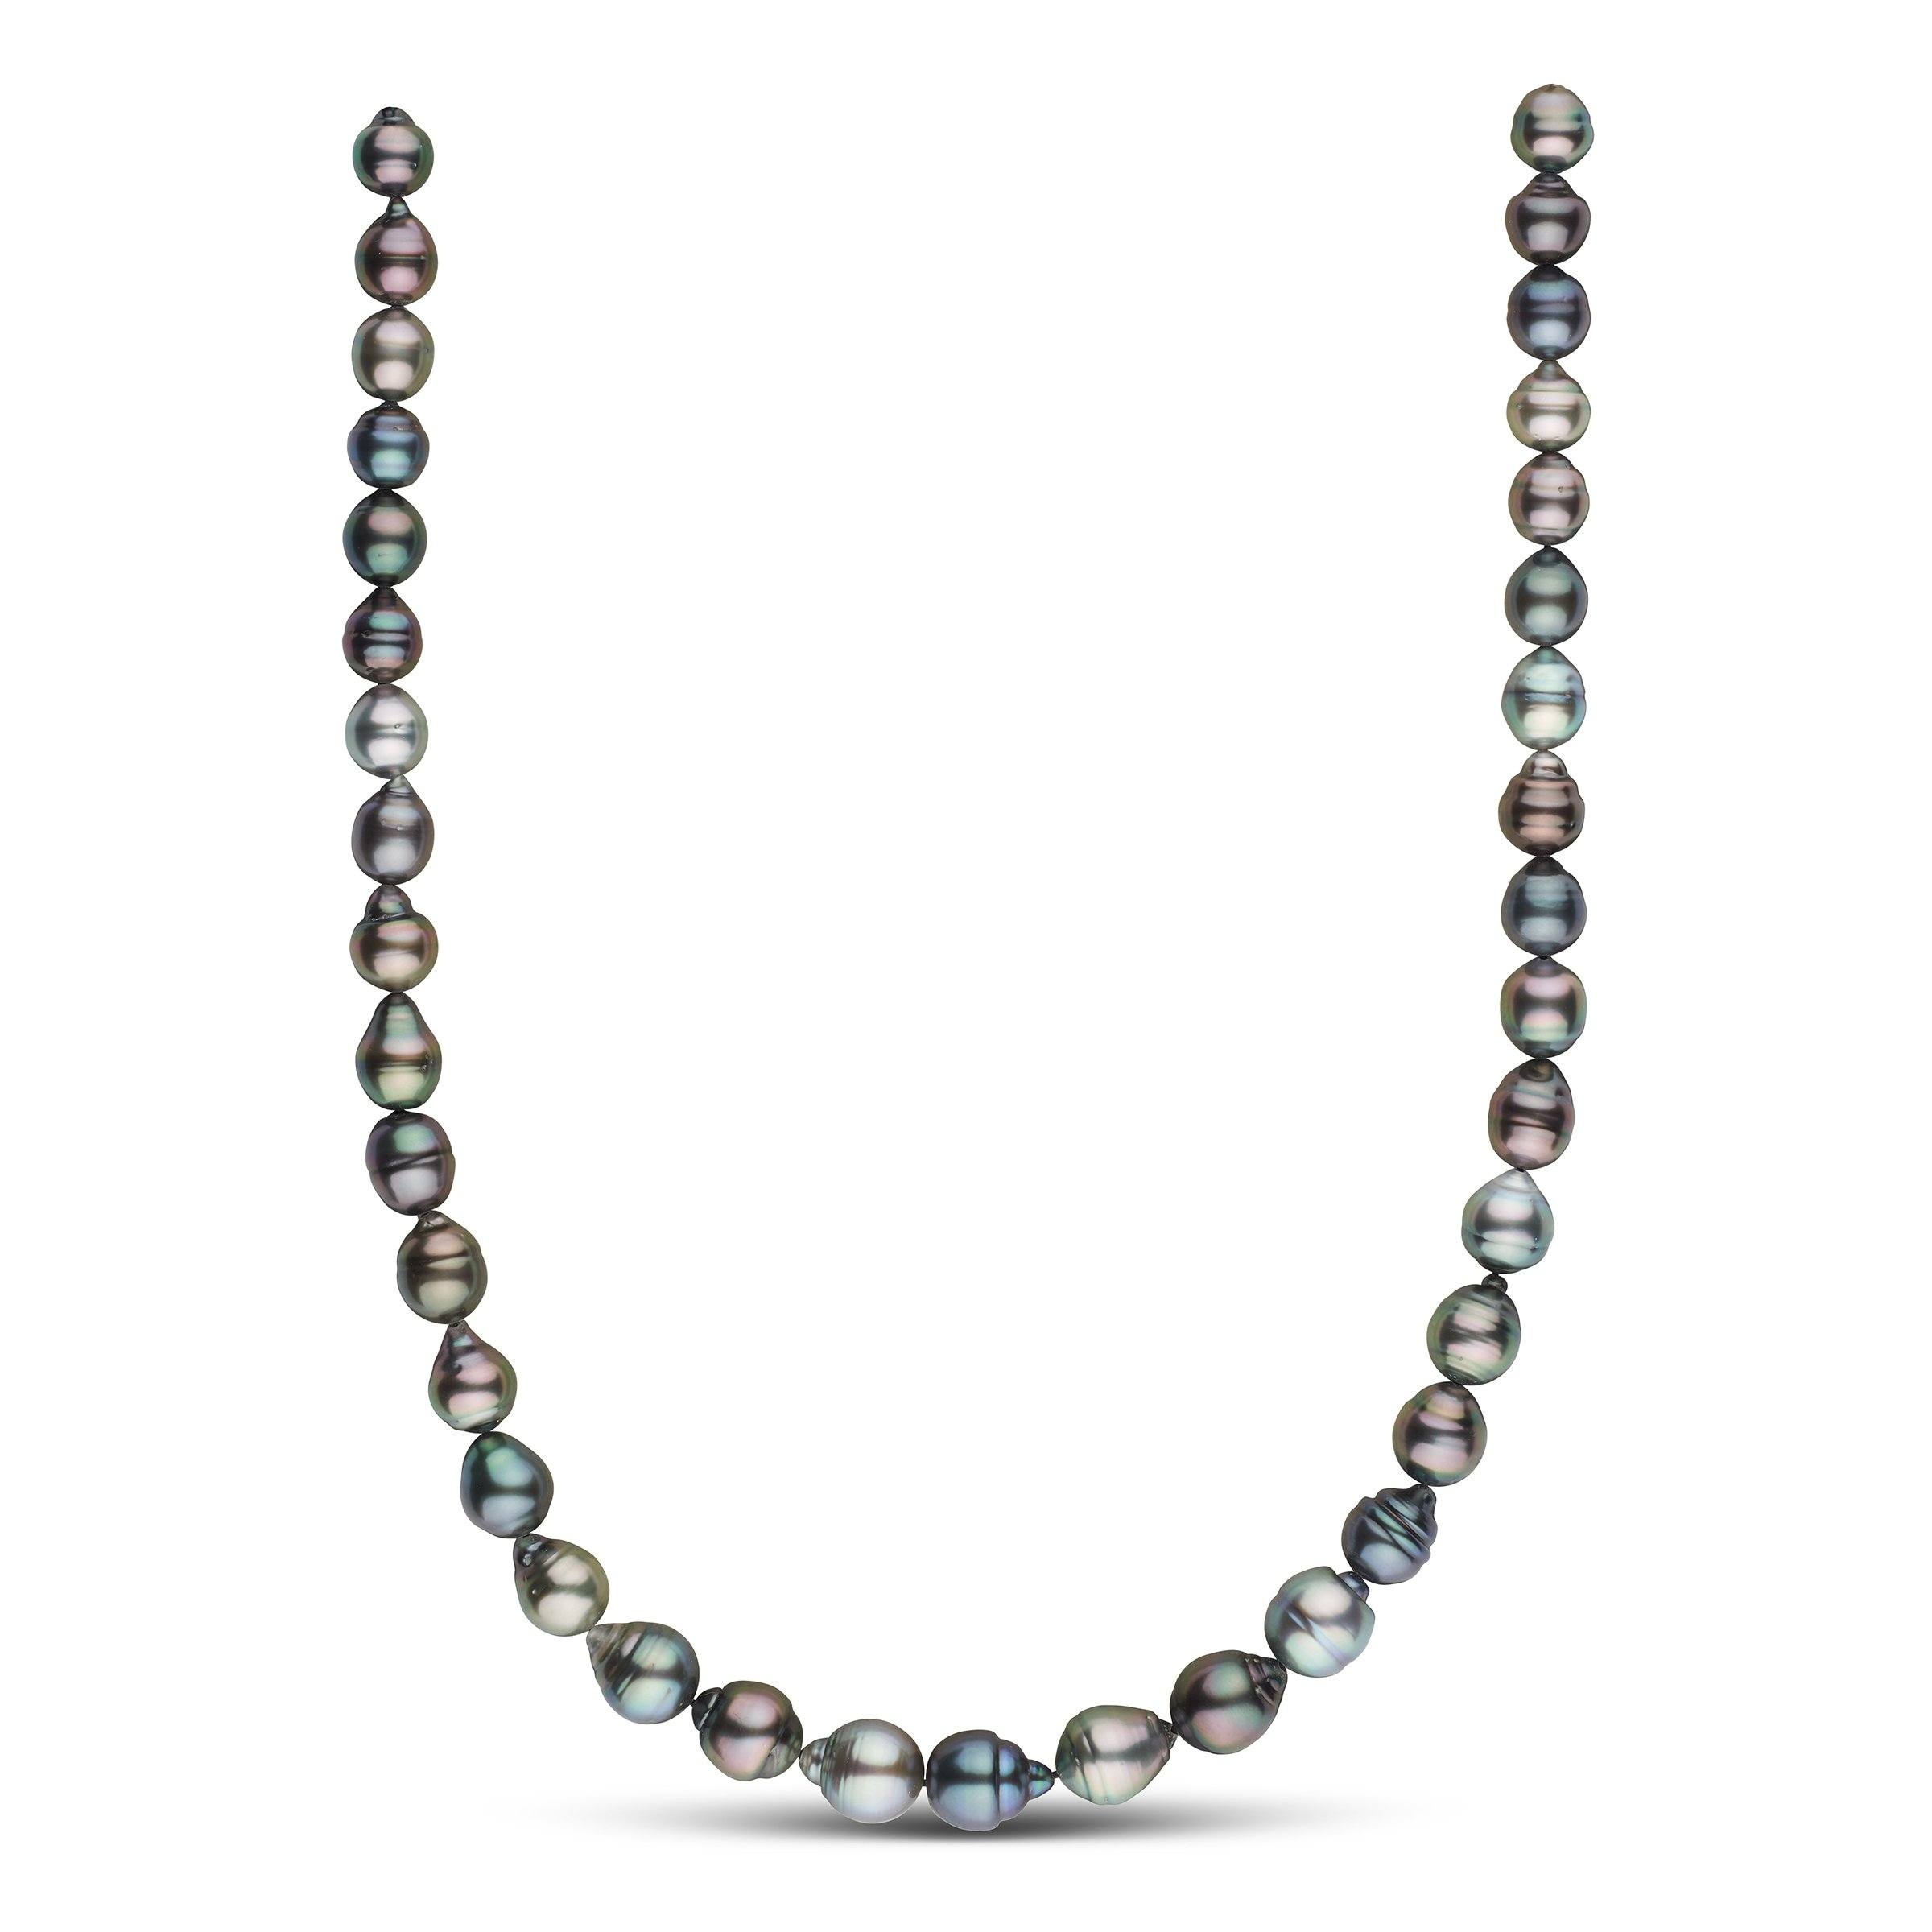 8.6-10.8 mm AAA Tahitian Baroque Pearl Necklace